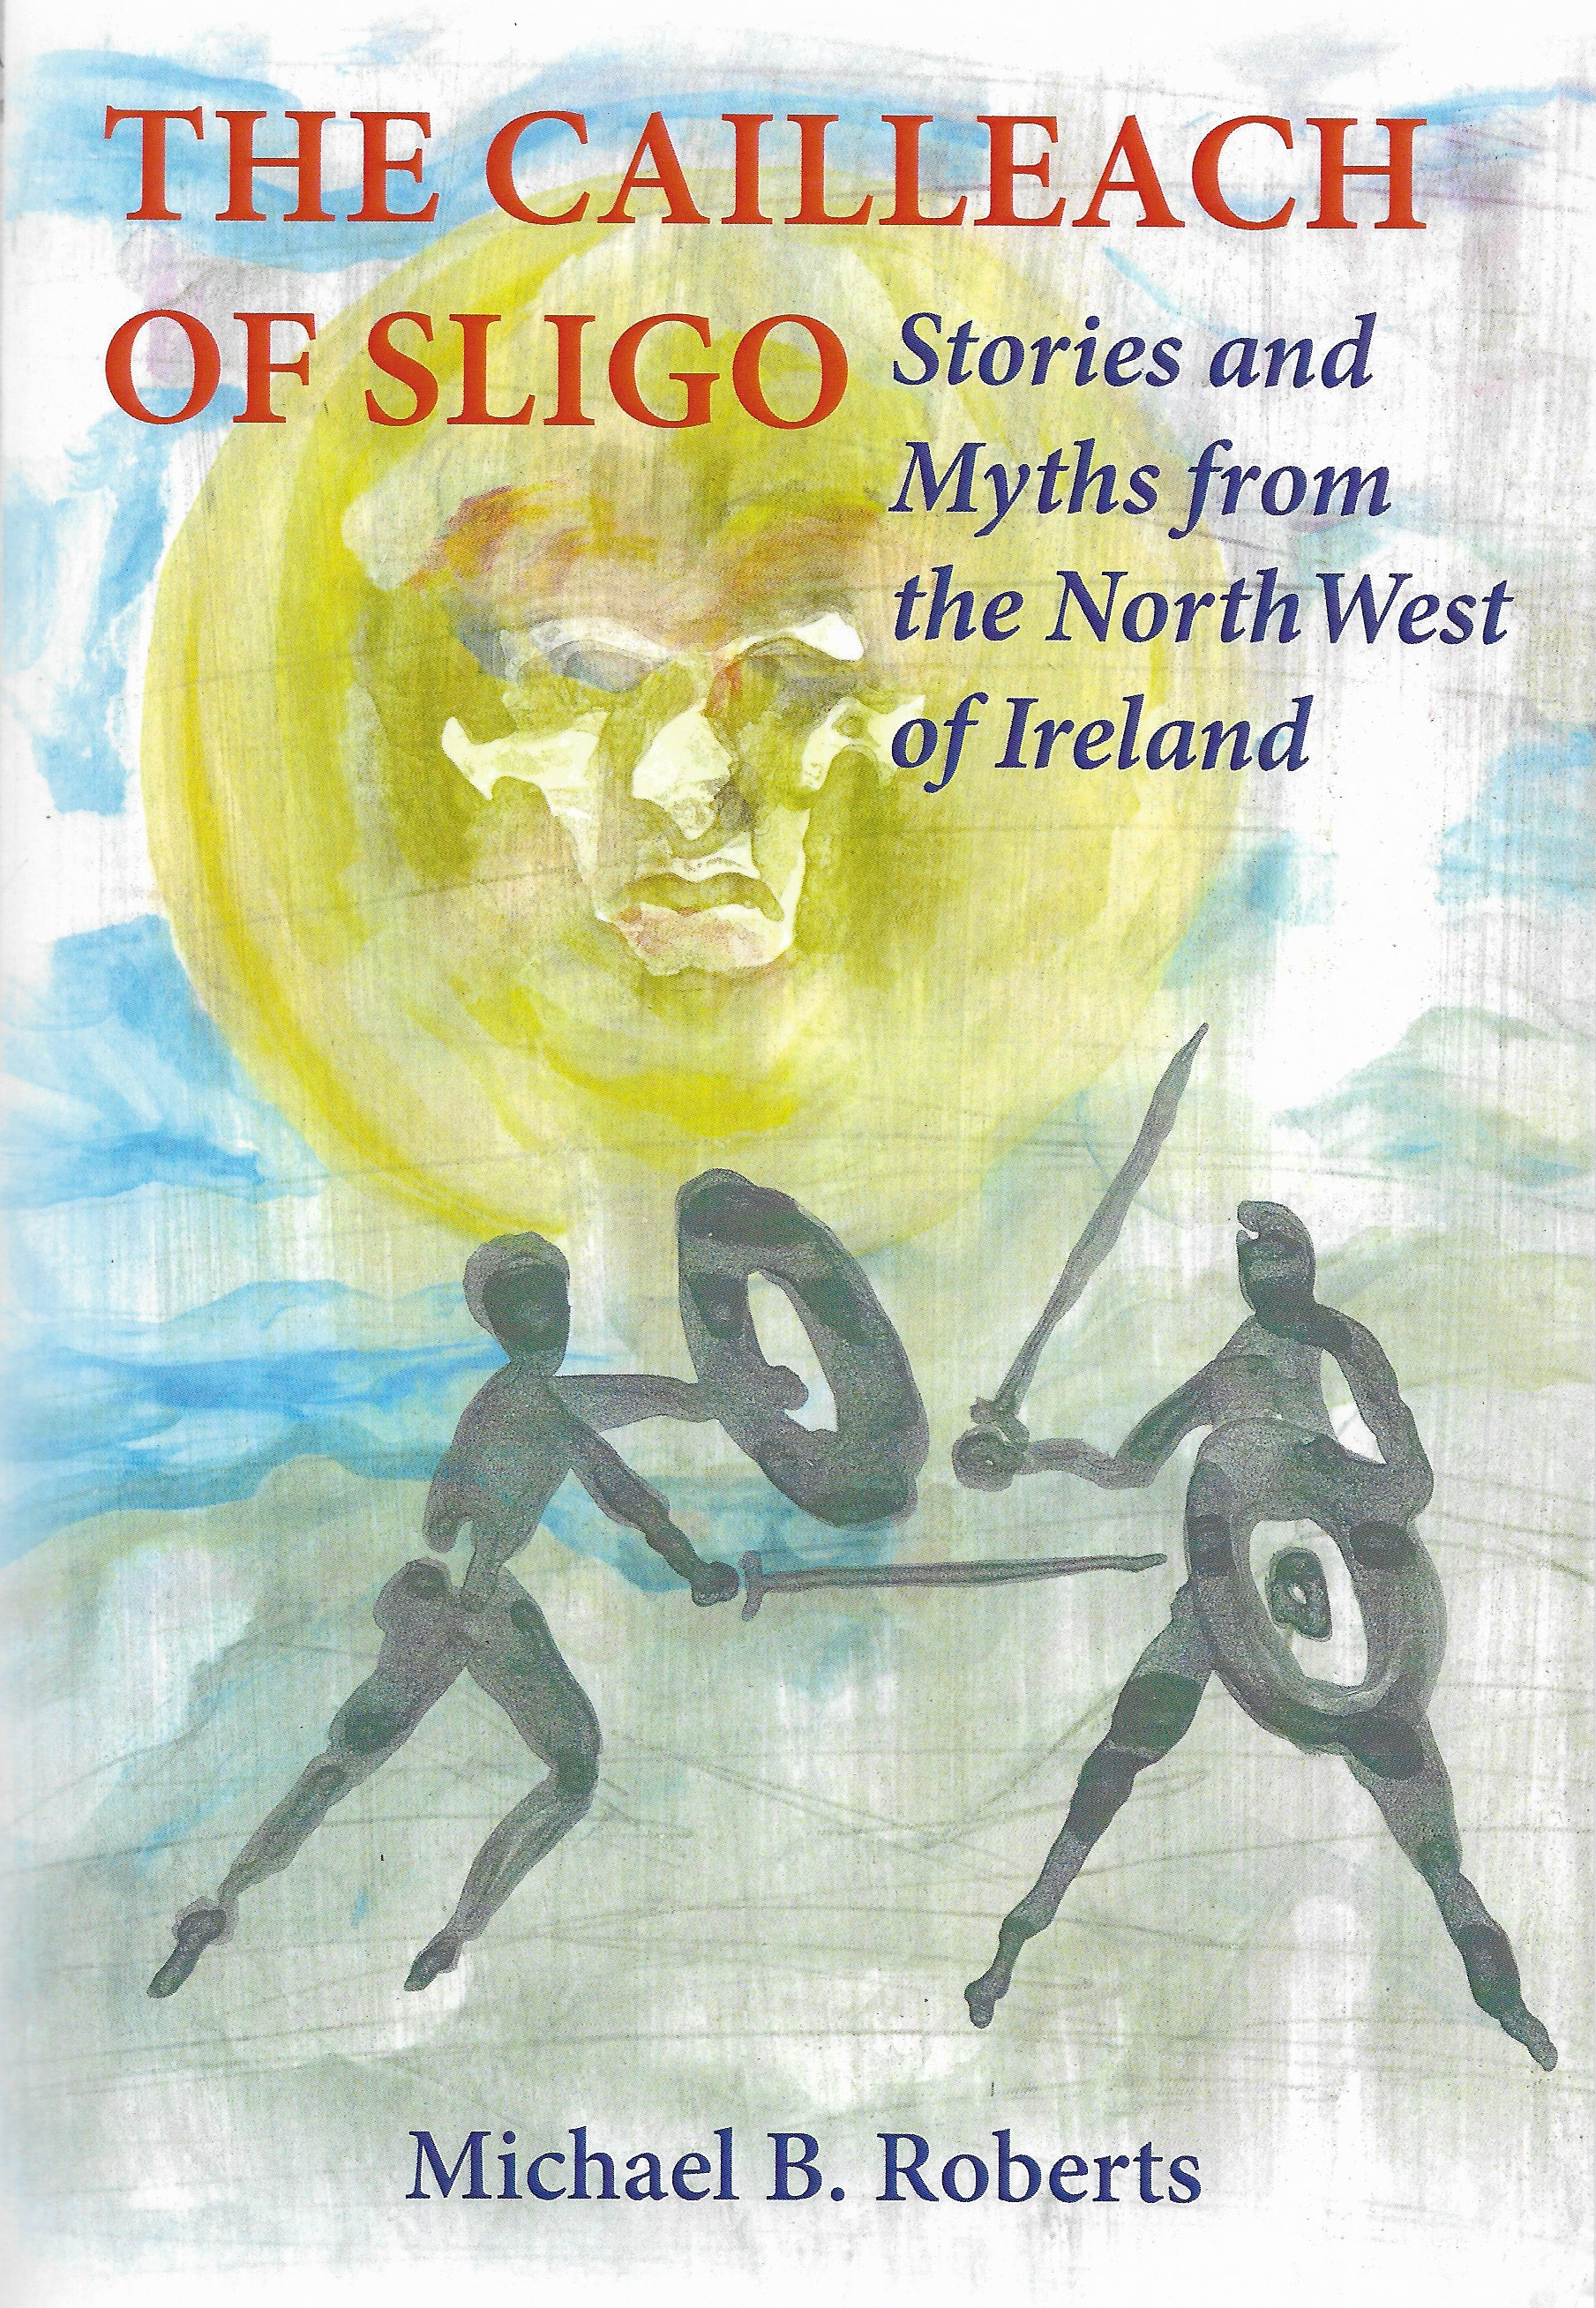 The Cailleach of Sligo